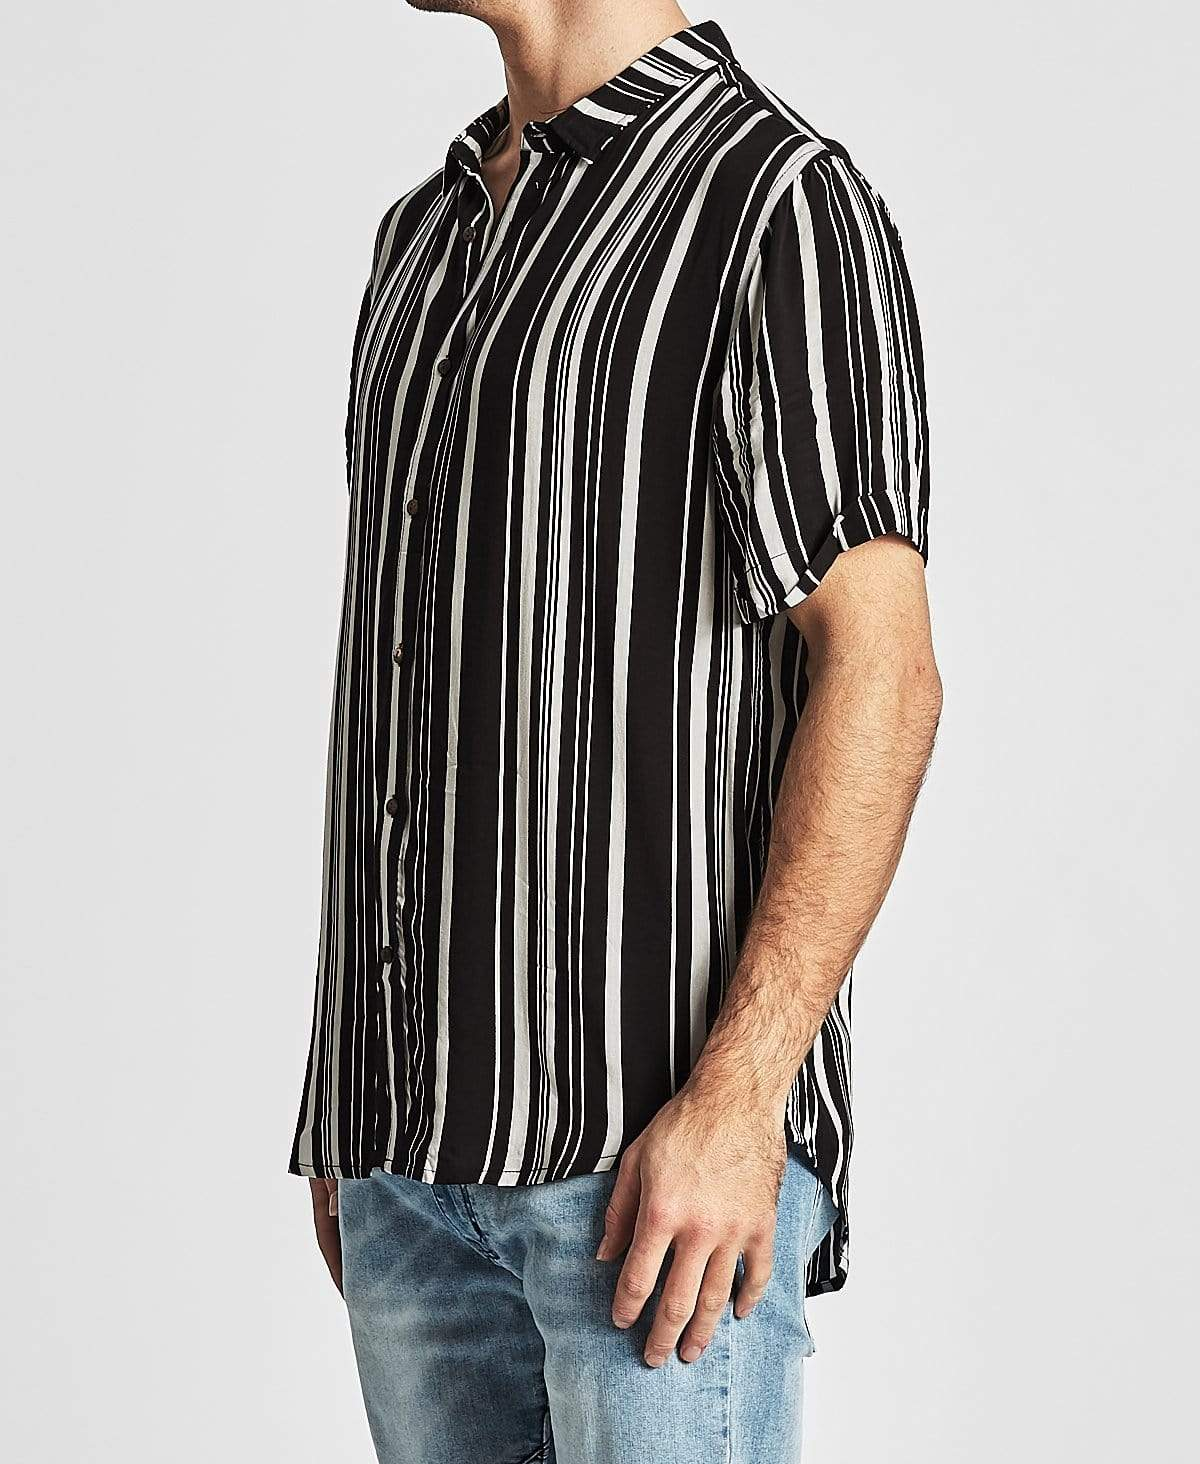 Sushi Radio Off Key Short Sleeve Casual Shirt Black/White Stripe